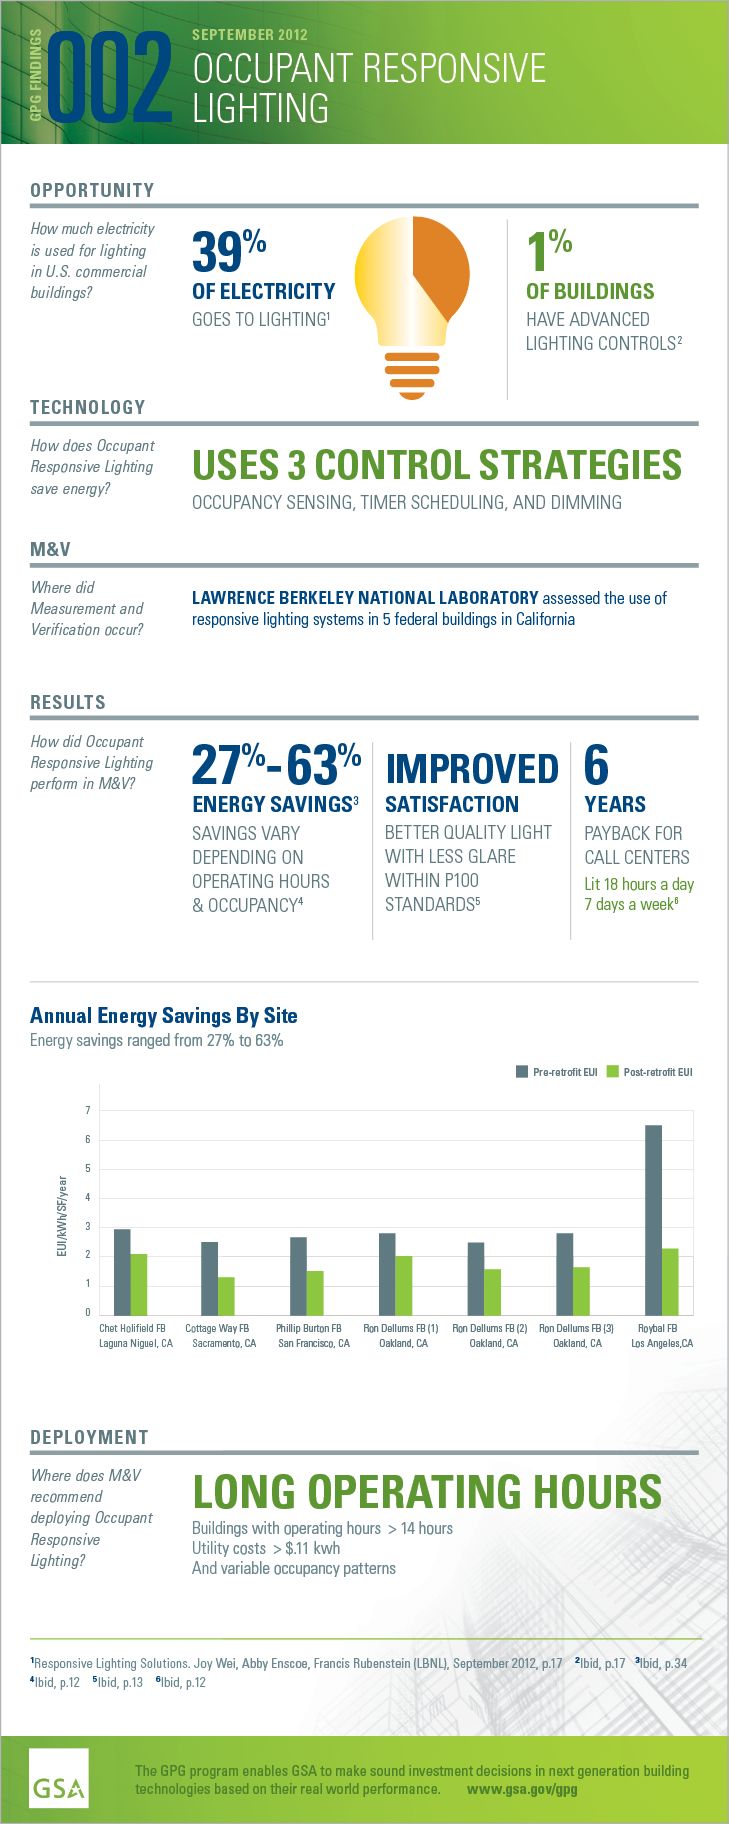 GPG Findings 02, September 2012. Occupant Responsive Lighting. Opportunity: How much electricity is used for lighting in U.S. commercial buildings? 39% of electricity goes to lighting. 1% of buildings have advanced lighting controls. Technology: How does Occupant Responsive Lighting save energy? Uses 3 control strategies. Occupancy sensing, timer scheduling, and dimming. Measurement and Verification. Where did M and V occur? Lawrence Berkeley National Laboratory assessed the use of responsive lighting systems in 5 federal buildings in California. Results: How did Occupant Responsive Lighting perform in M and V? 27%-63% energy savings vary depending on operating hours. Improved satisfaction. Better quality light with less glare within P100 standards. 6 years payback for call centers. Lit 18 hours a day 7 days a week. Deployment: Where does M and V recommend deploying Occupant Responsive Lighting? Long Operating Hours. Buildings with operating hours greater than 14 hours, utility costs greater than $.11 kwh, and variable occupancy patterns.